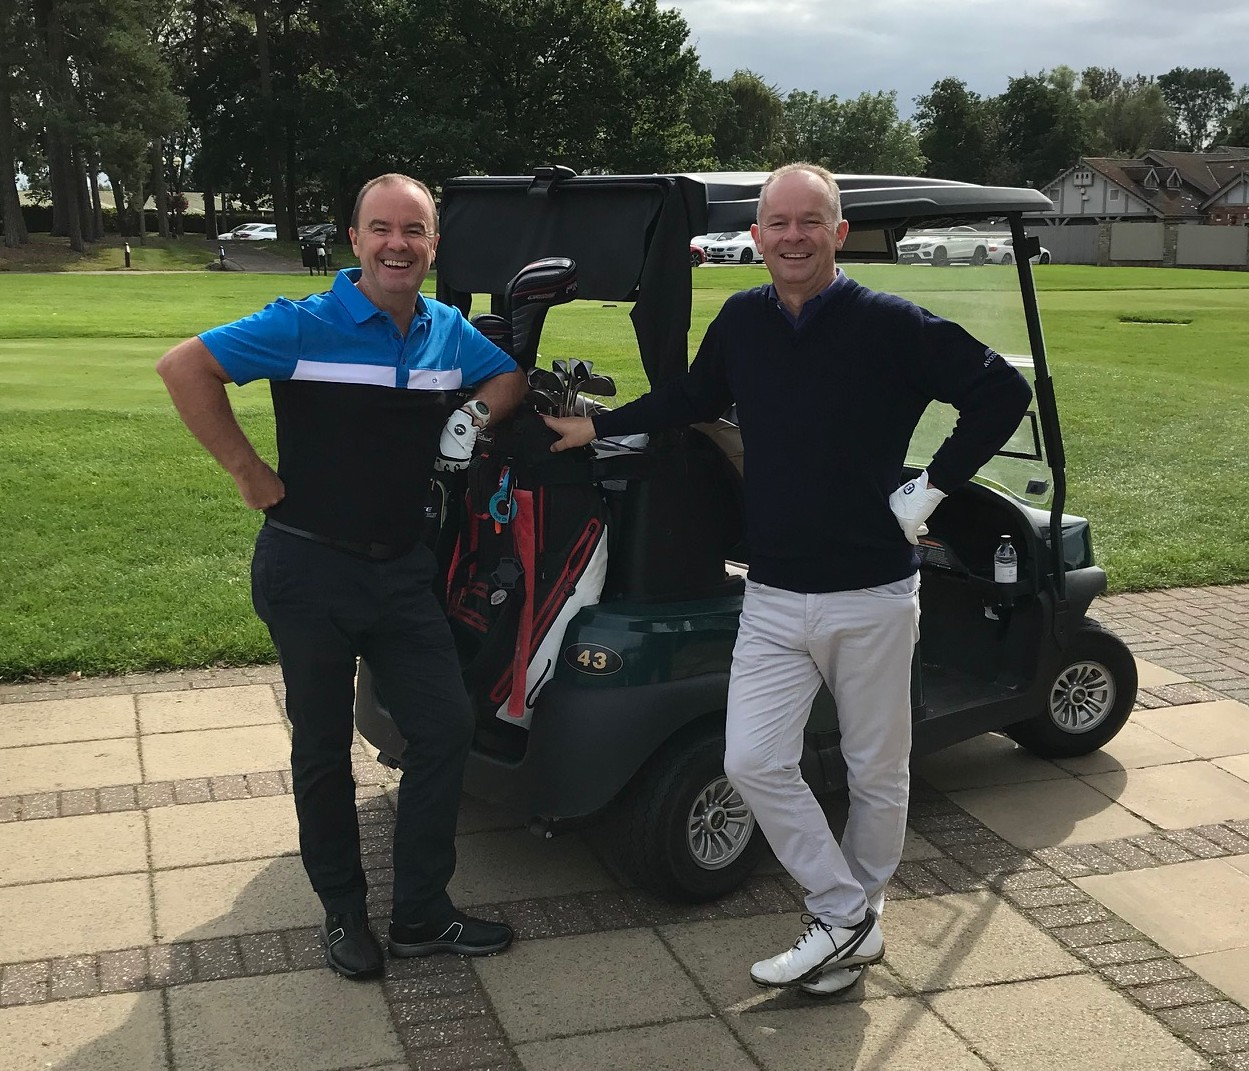 Avonside Group annual CEO Golf Day 2019, Chris Firth